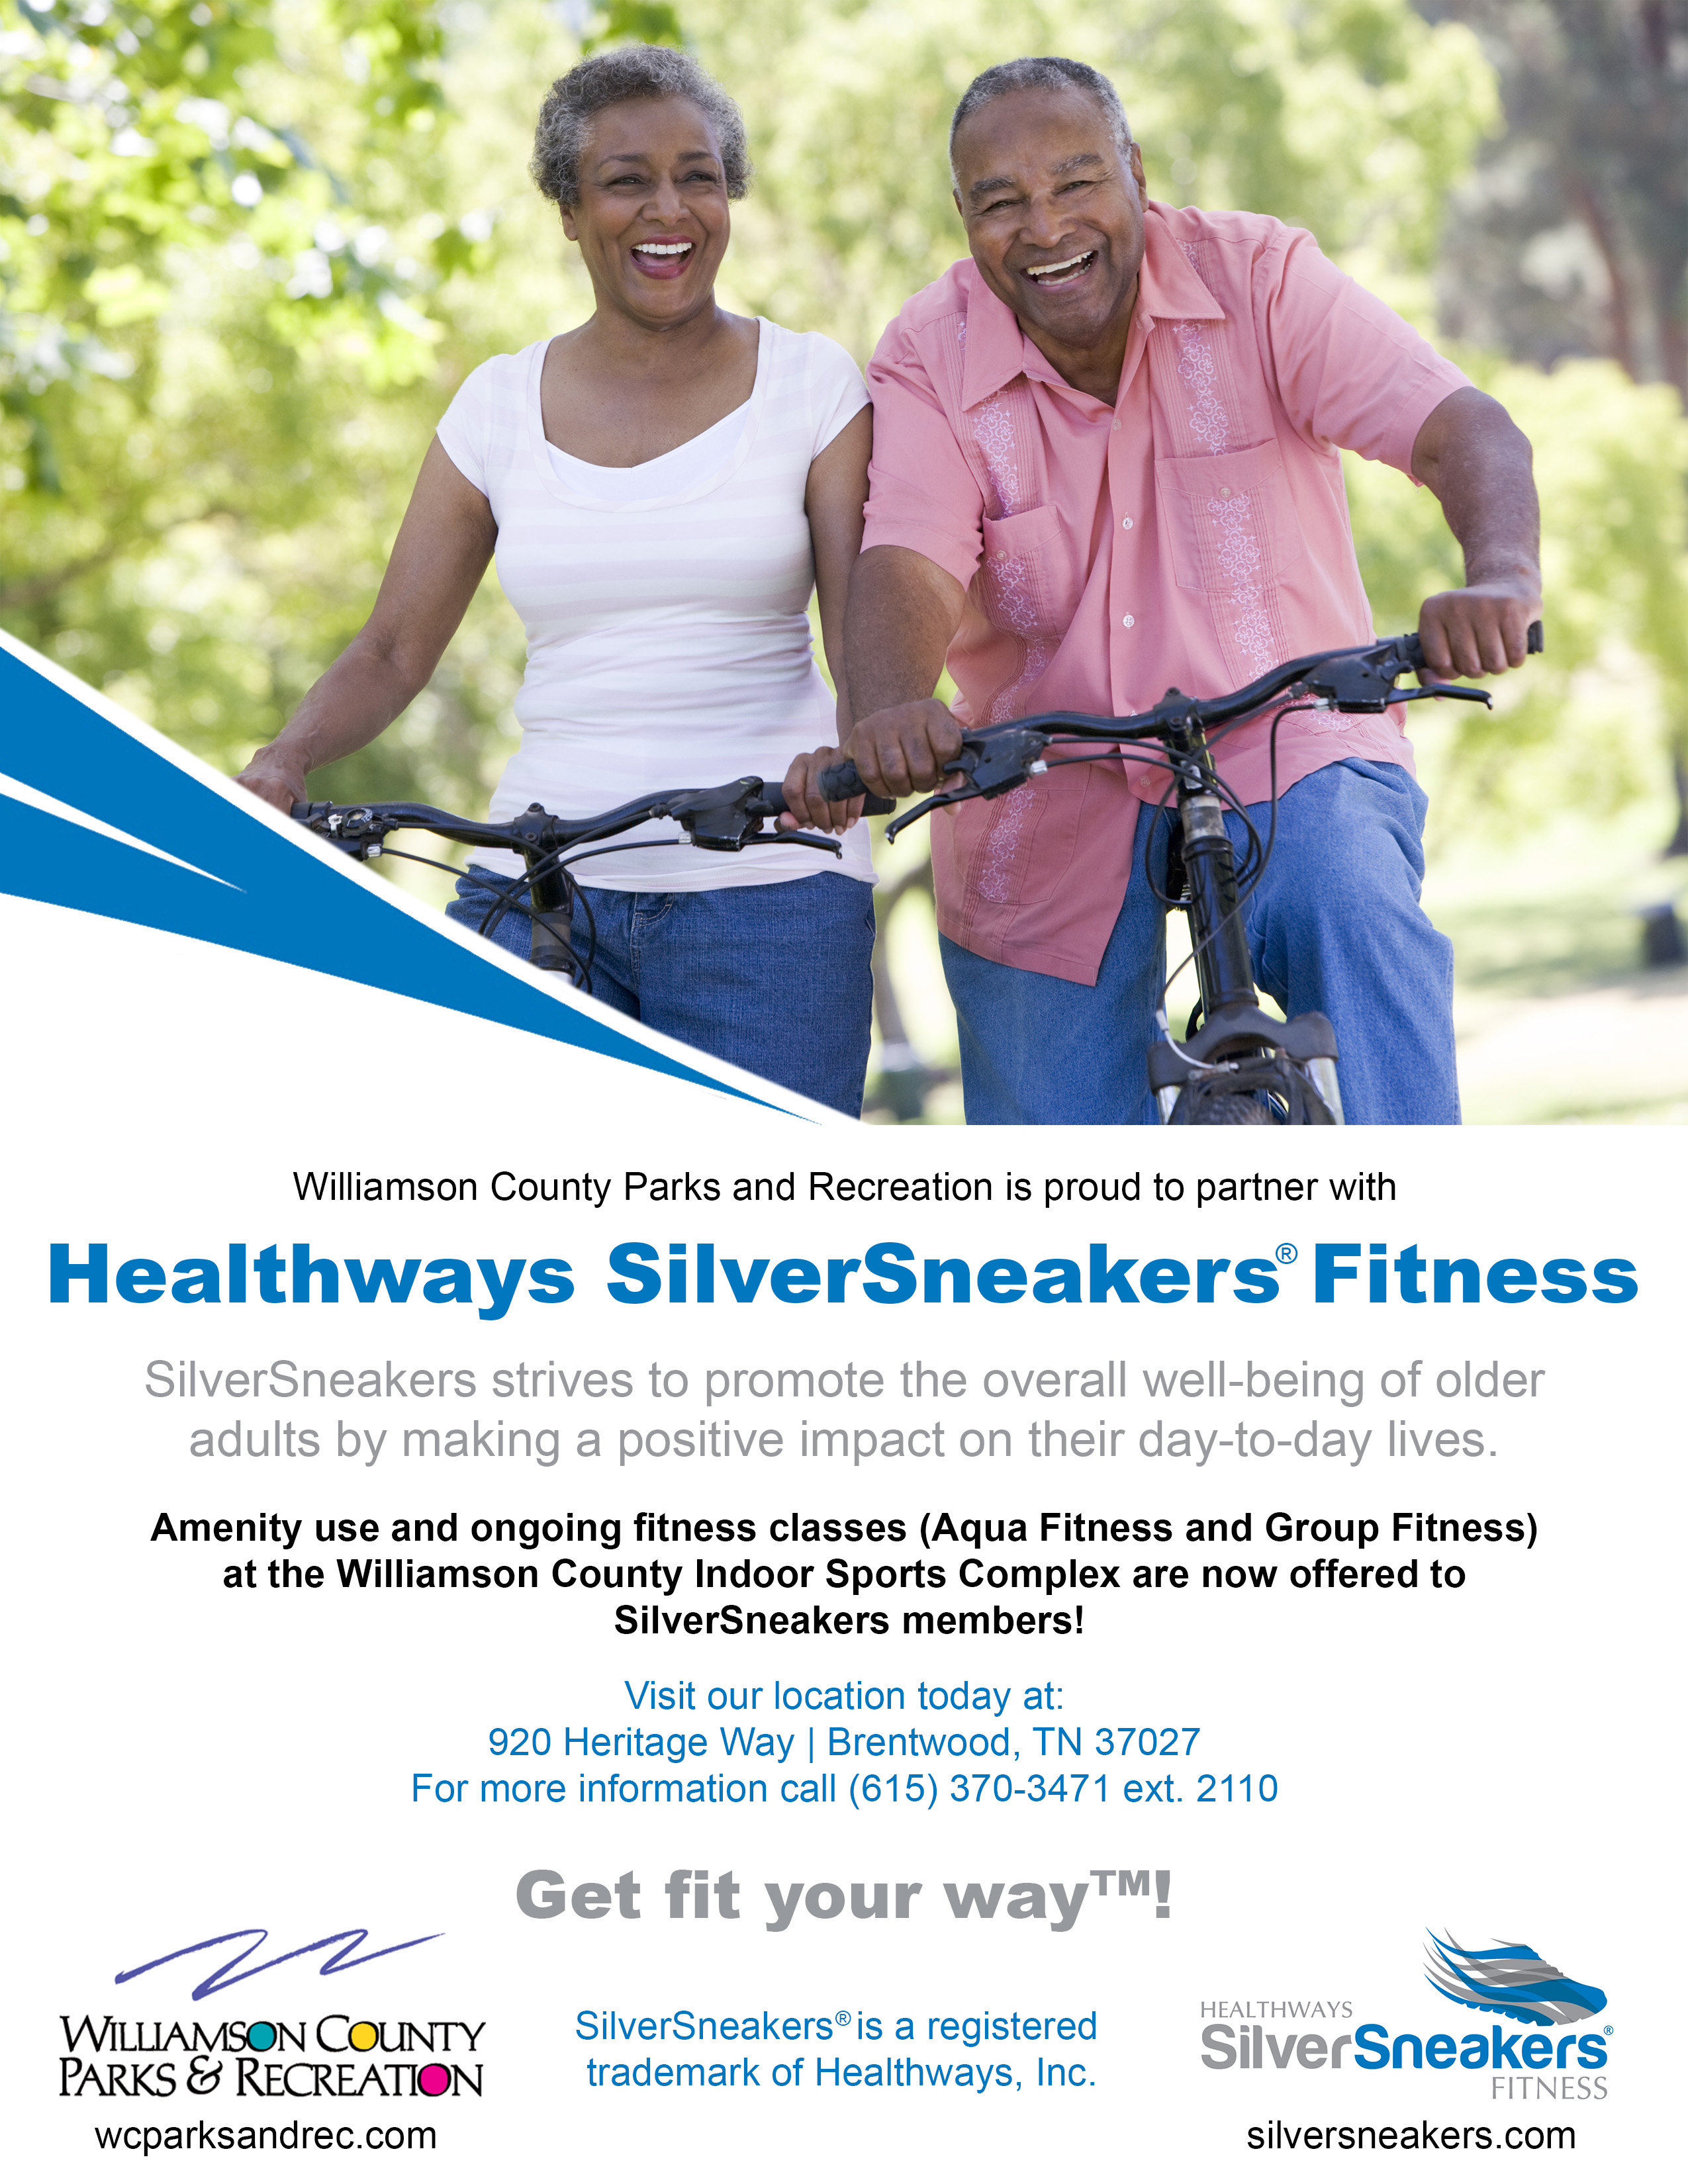 How can you become a Silver Sneakers member?